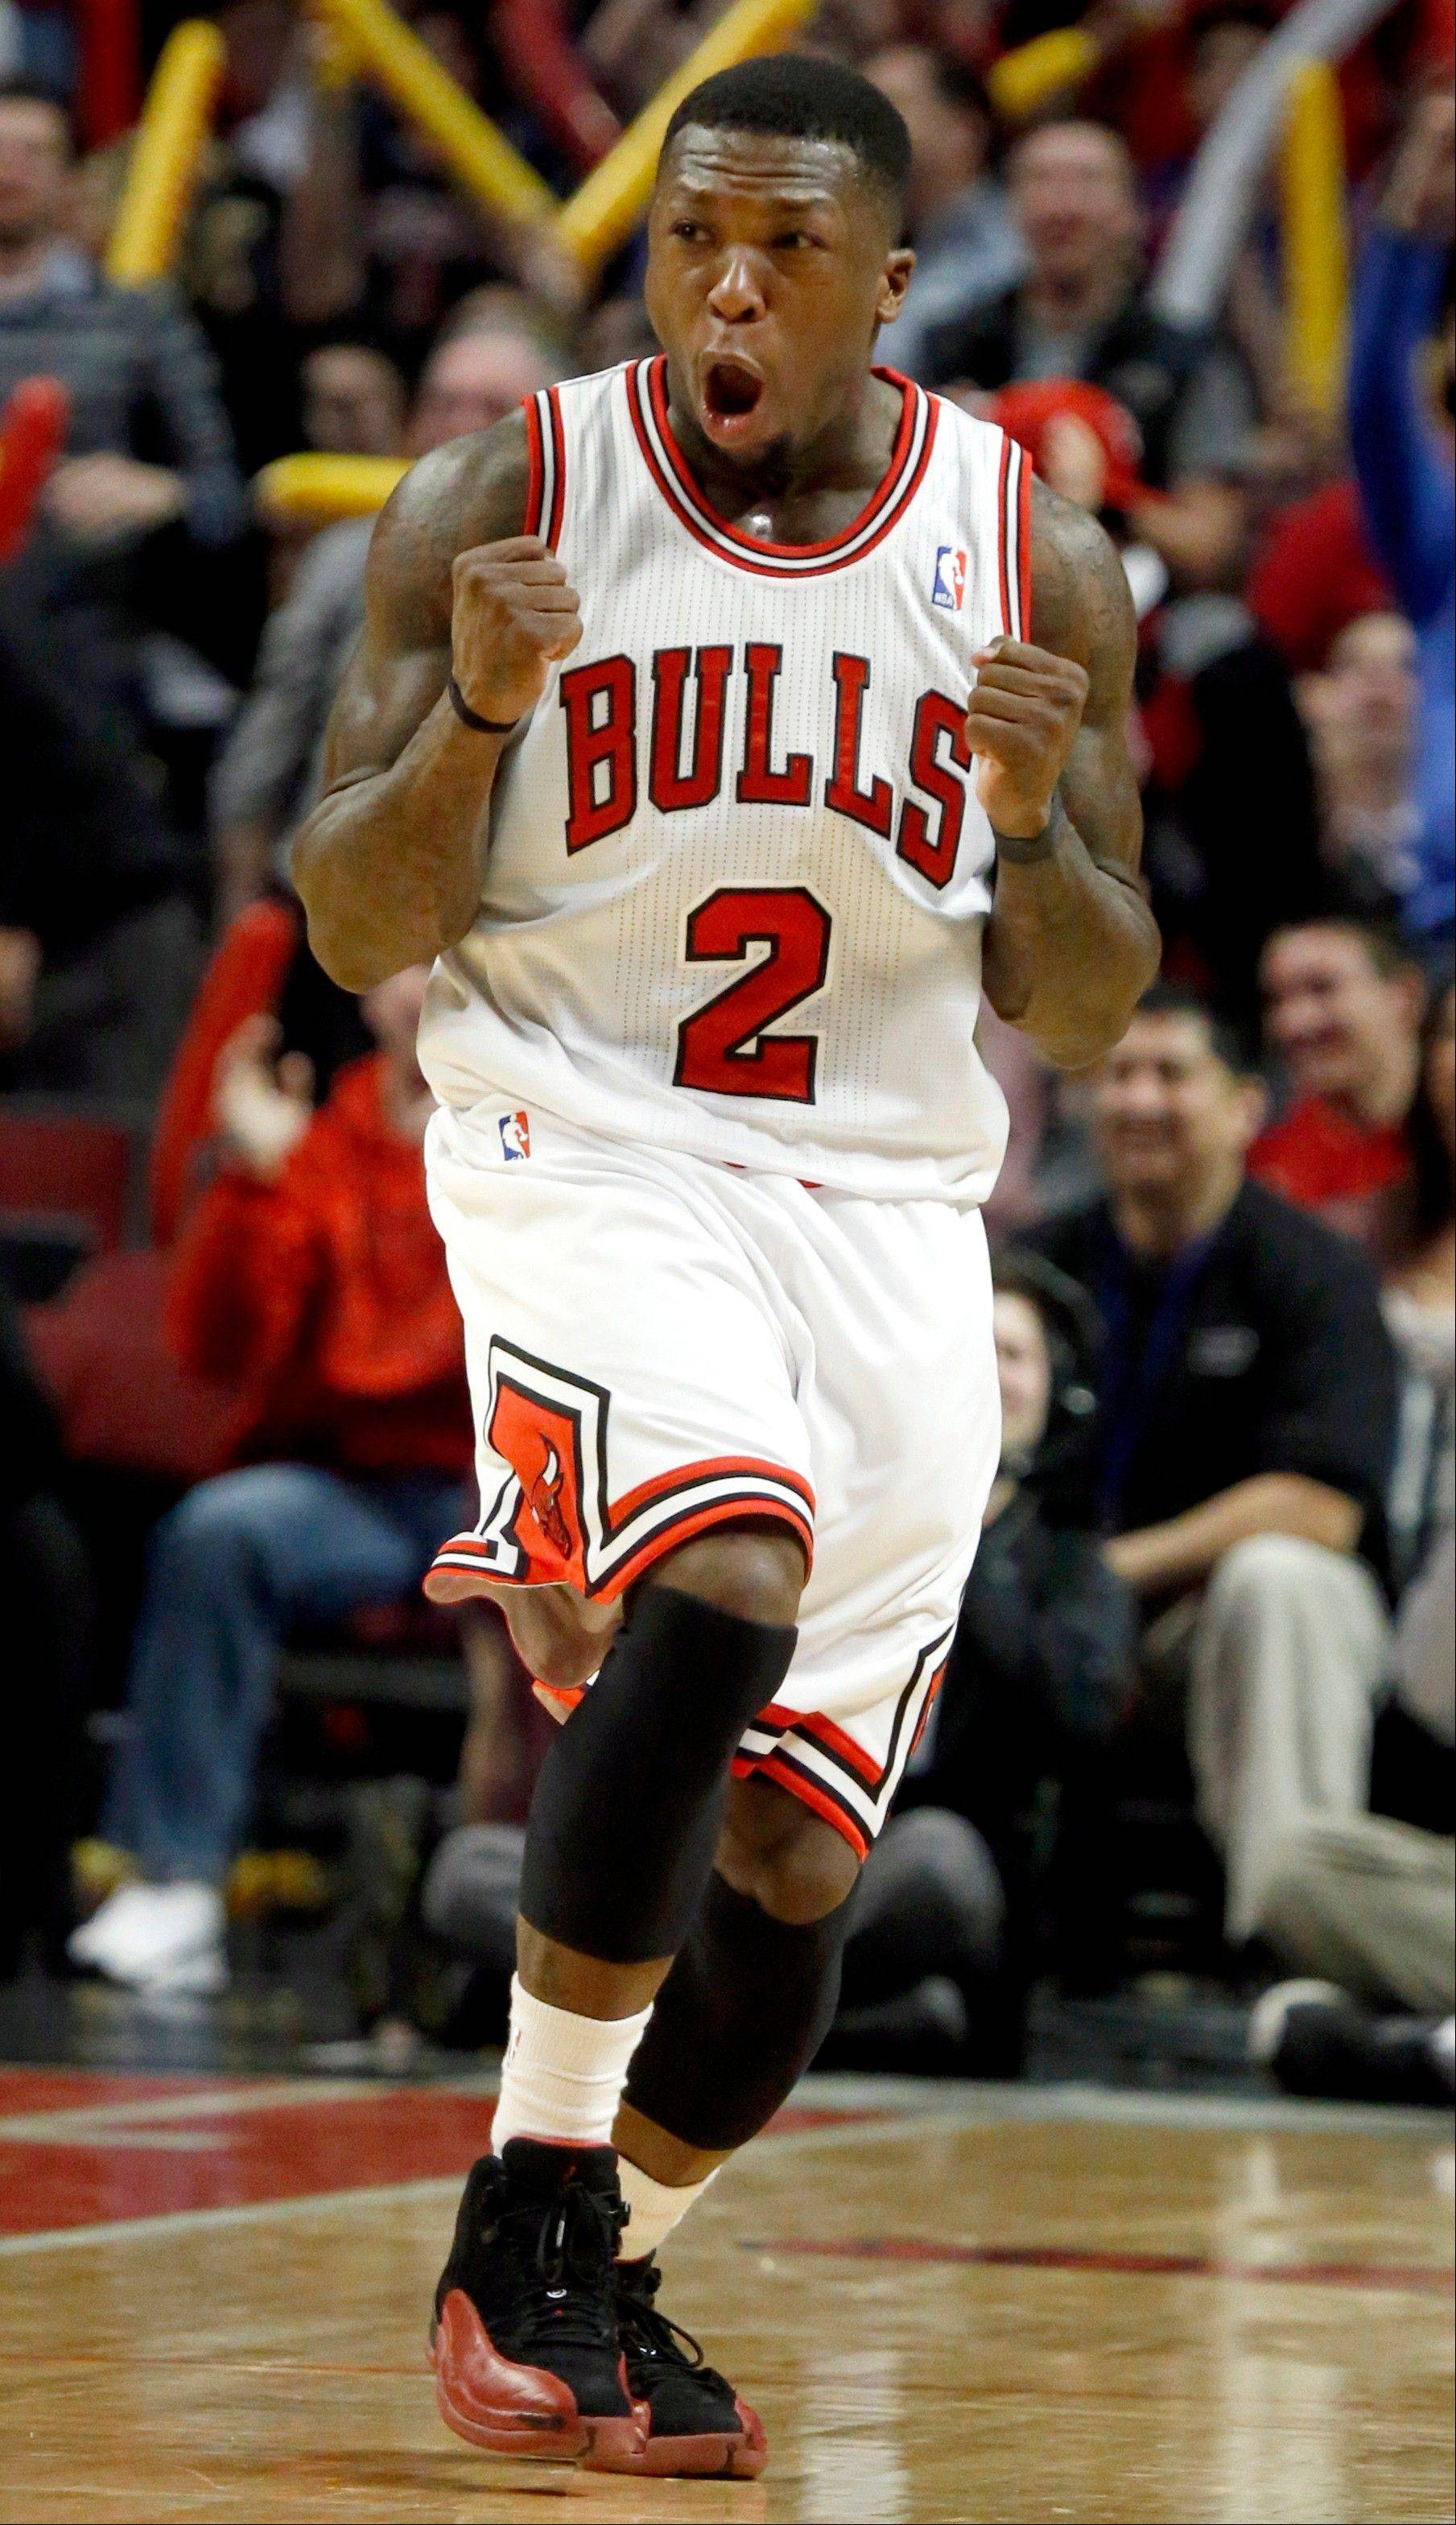 Chicago Bulls point guard Nate Robinson reacts during the second half of an NBA basketball game against the Detroit Pistons, Wednesday, Jan. 23, 2013, in Chicago. The Bulls won 85-82.